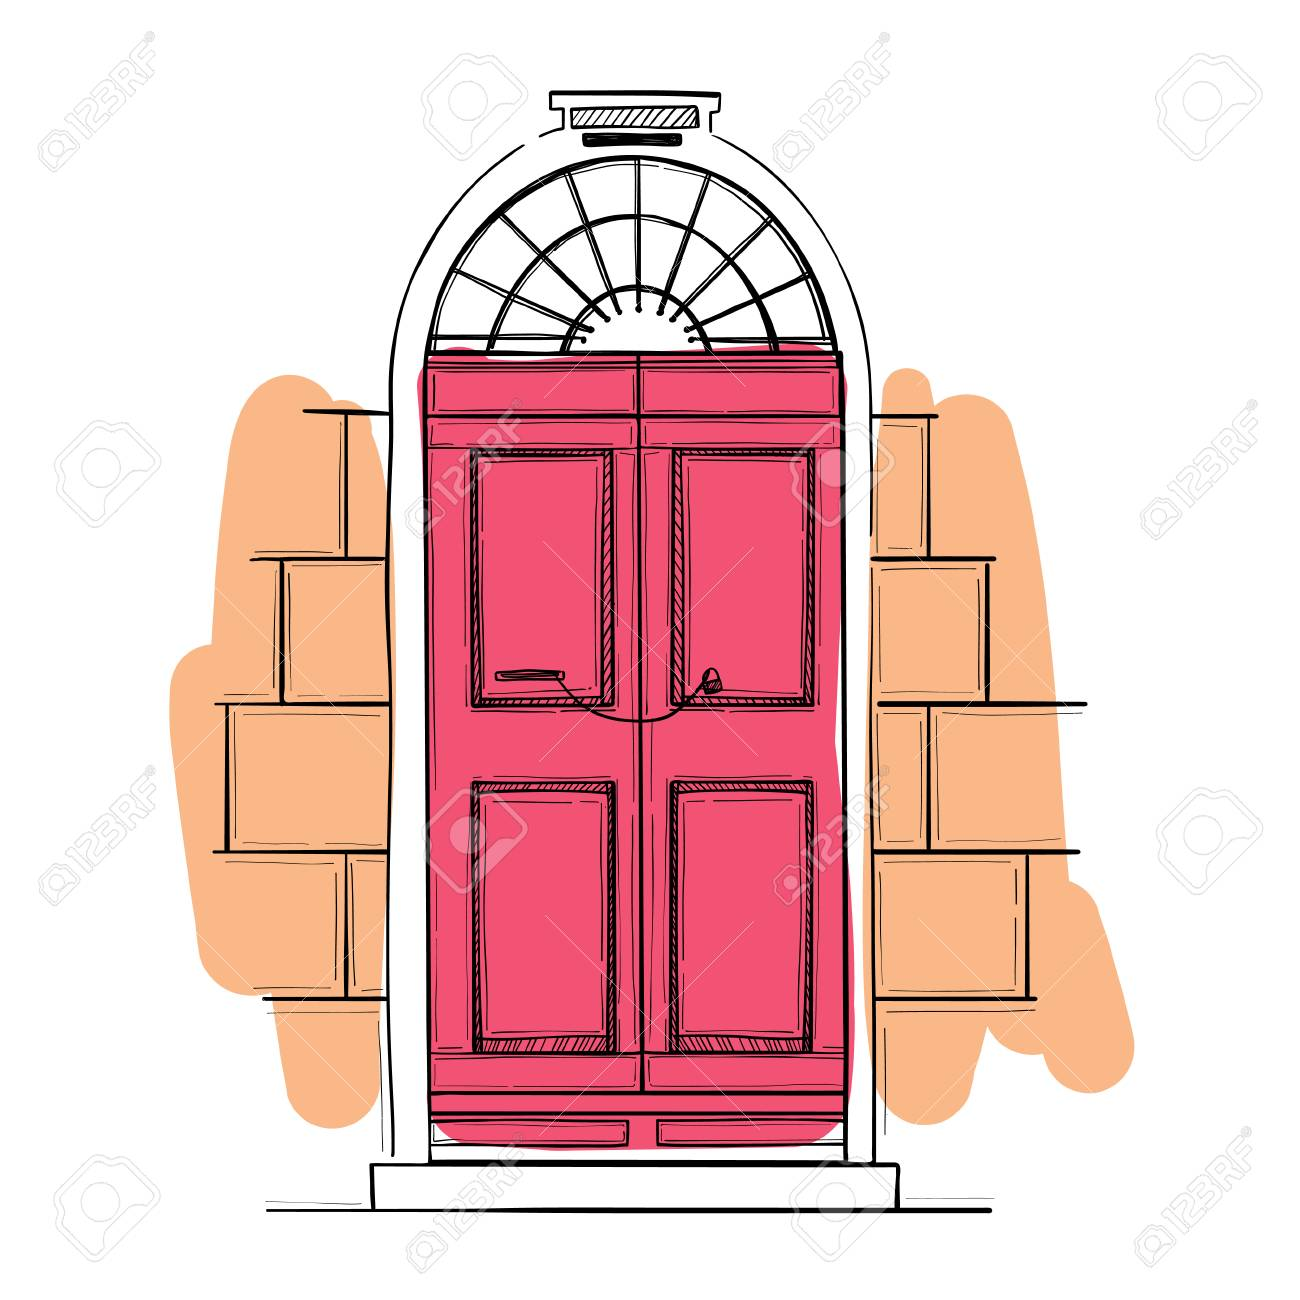 Hand drawn vector illustrations - old vintage door. Isolated on white background. - 72112262